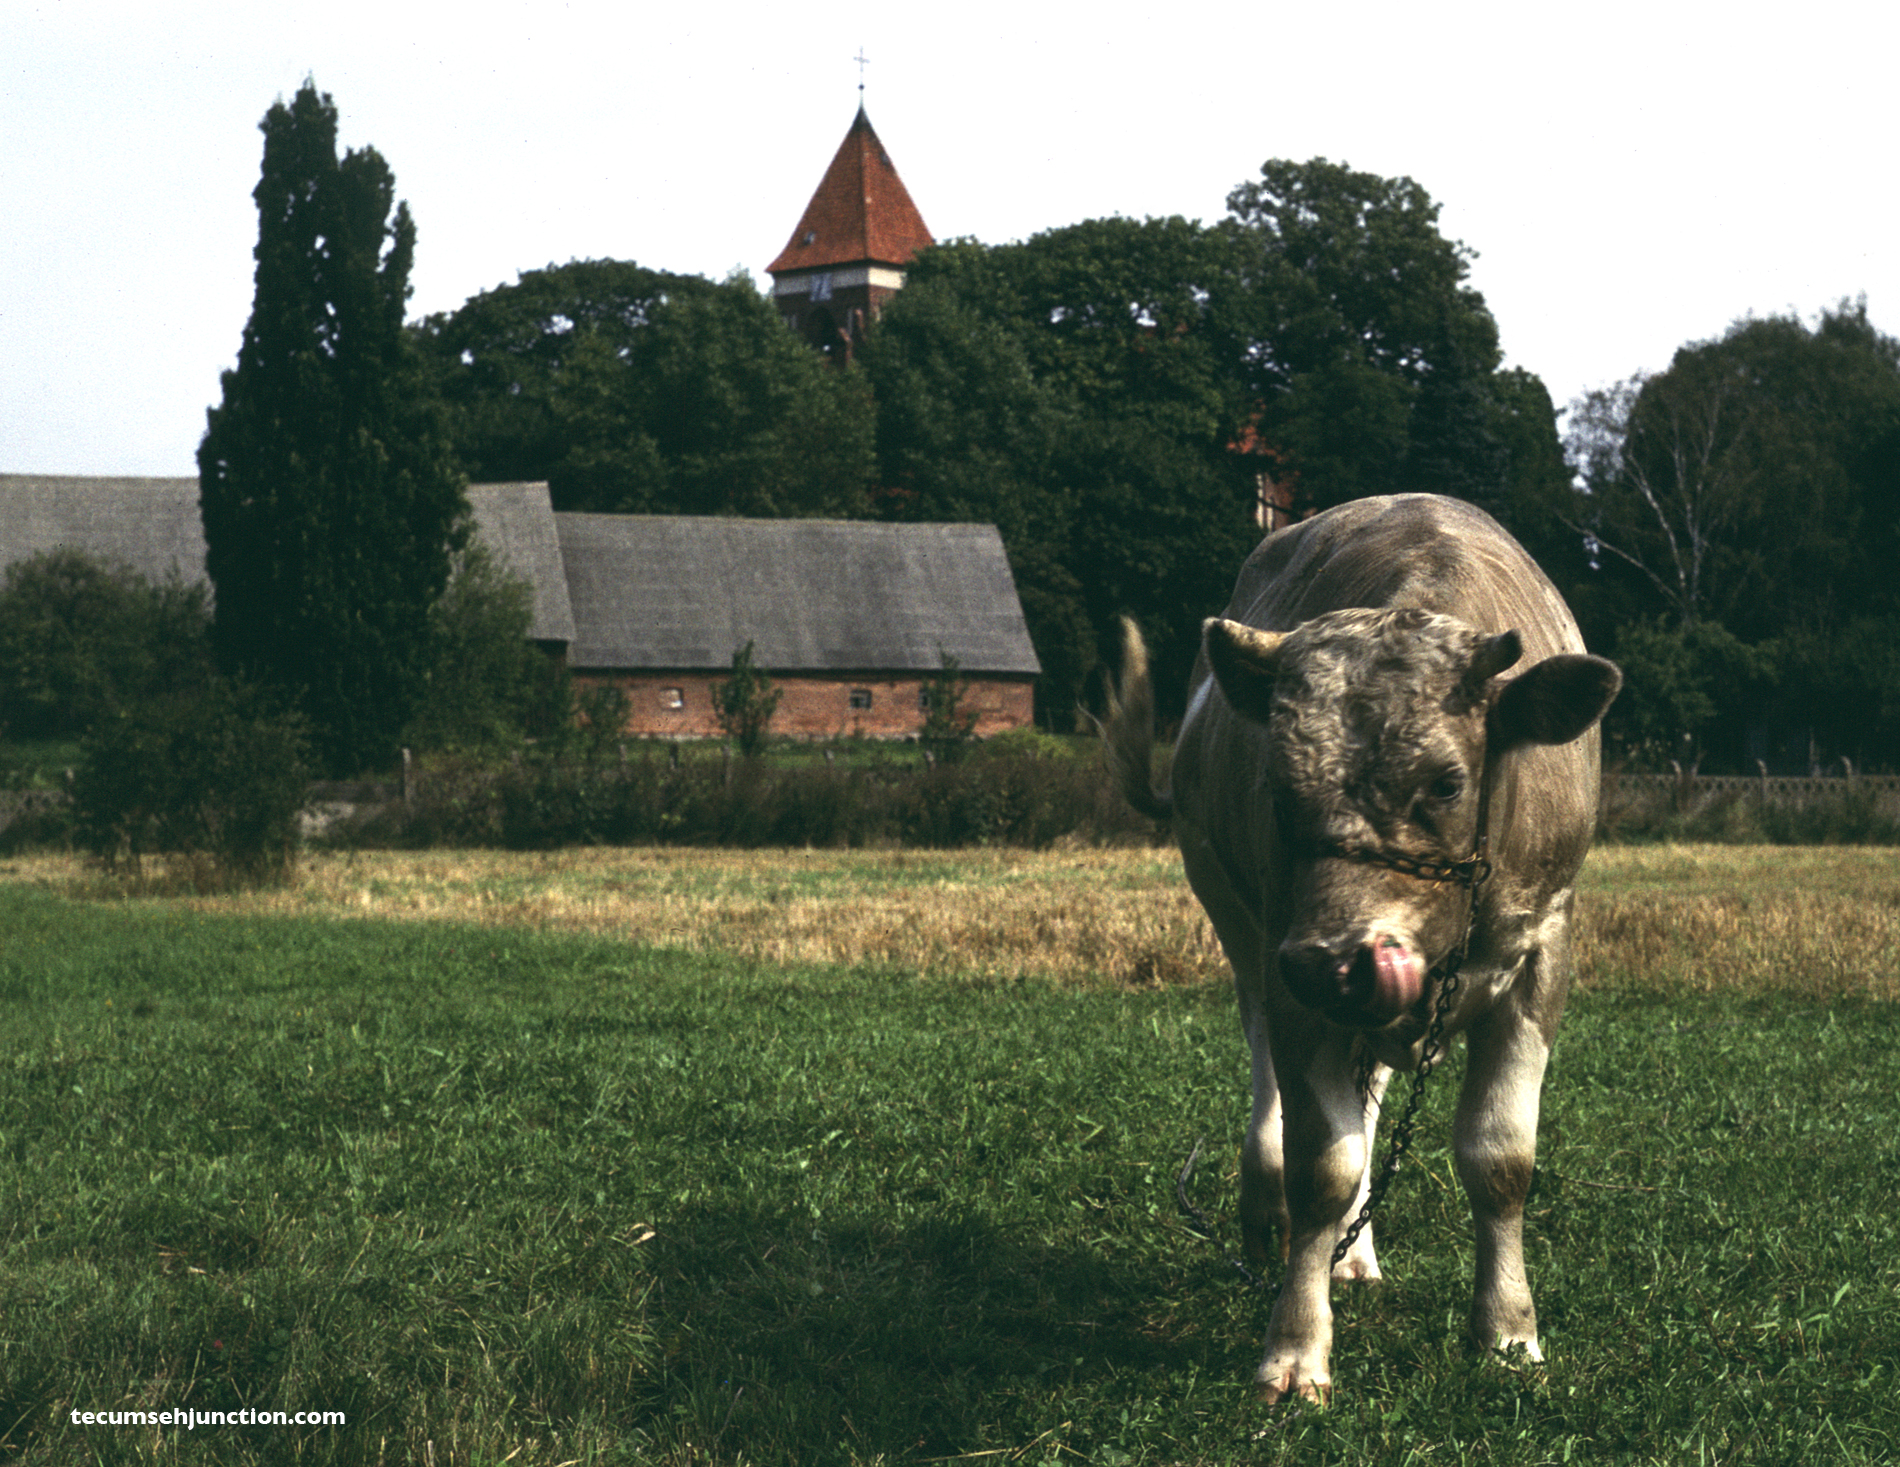 A bull grazes in a field on the outskirts of Czersk, Poland